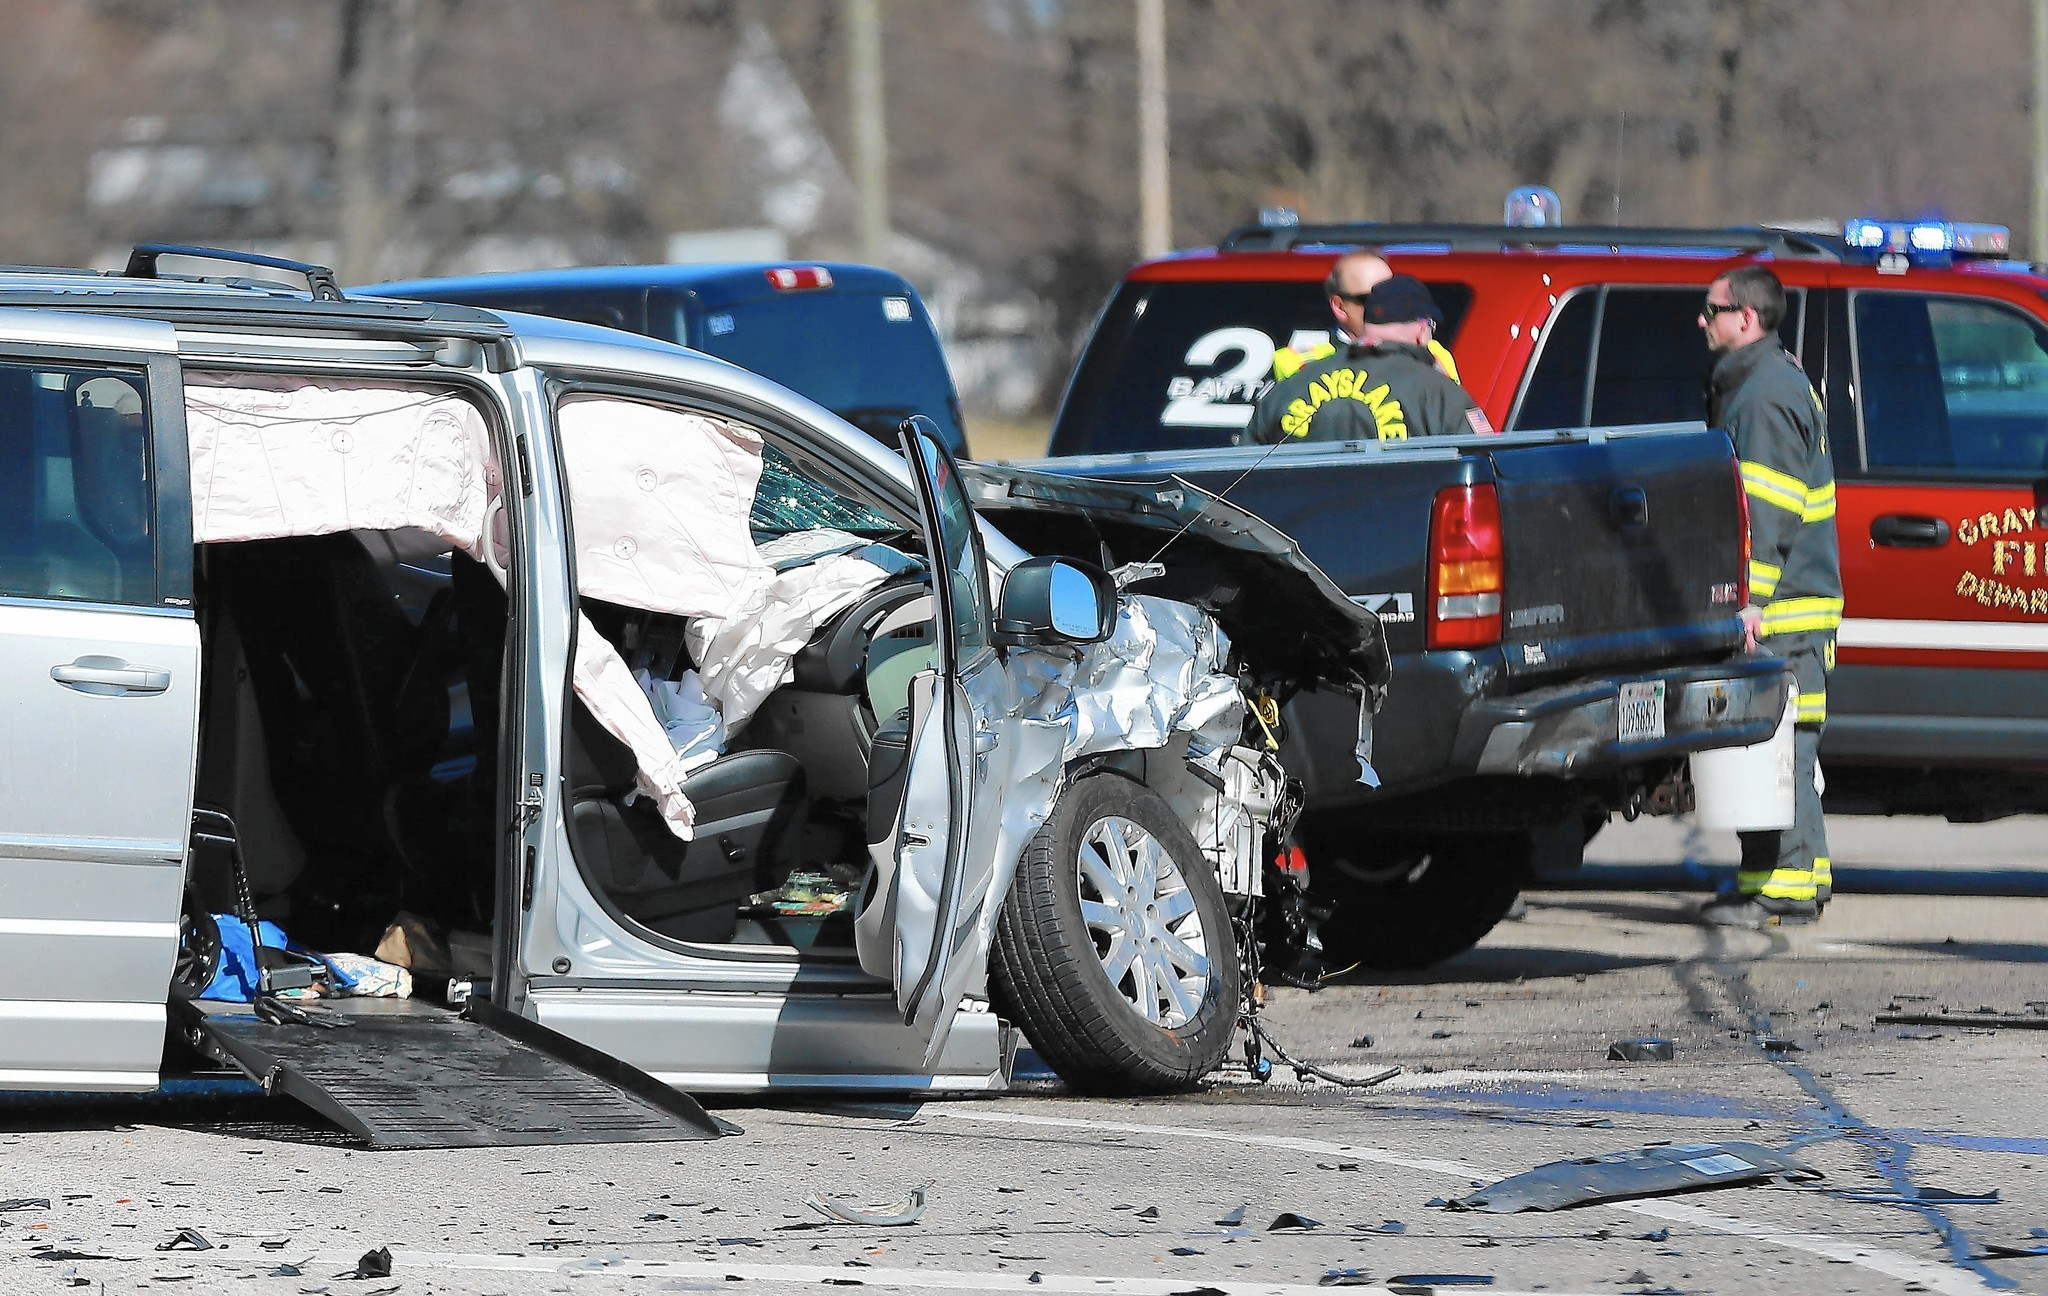 One Fatality Reported In Three Vehicle Crash Near